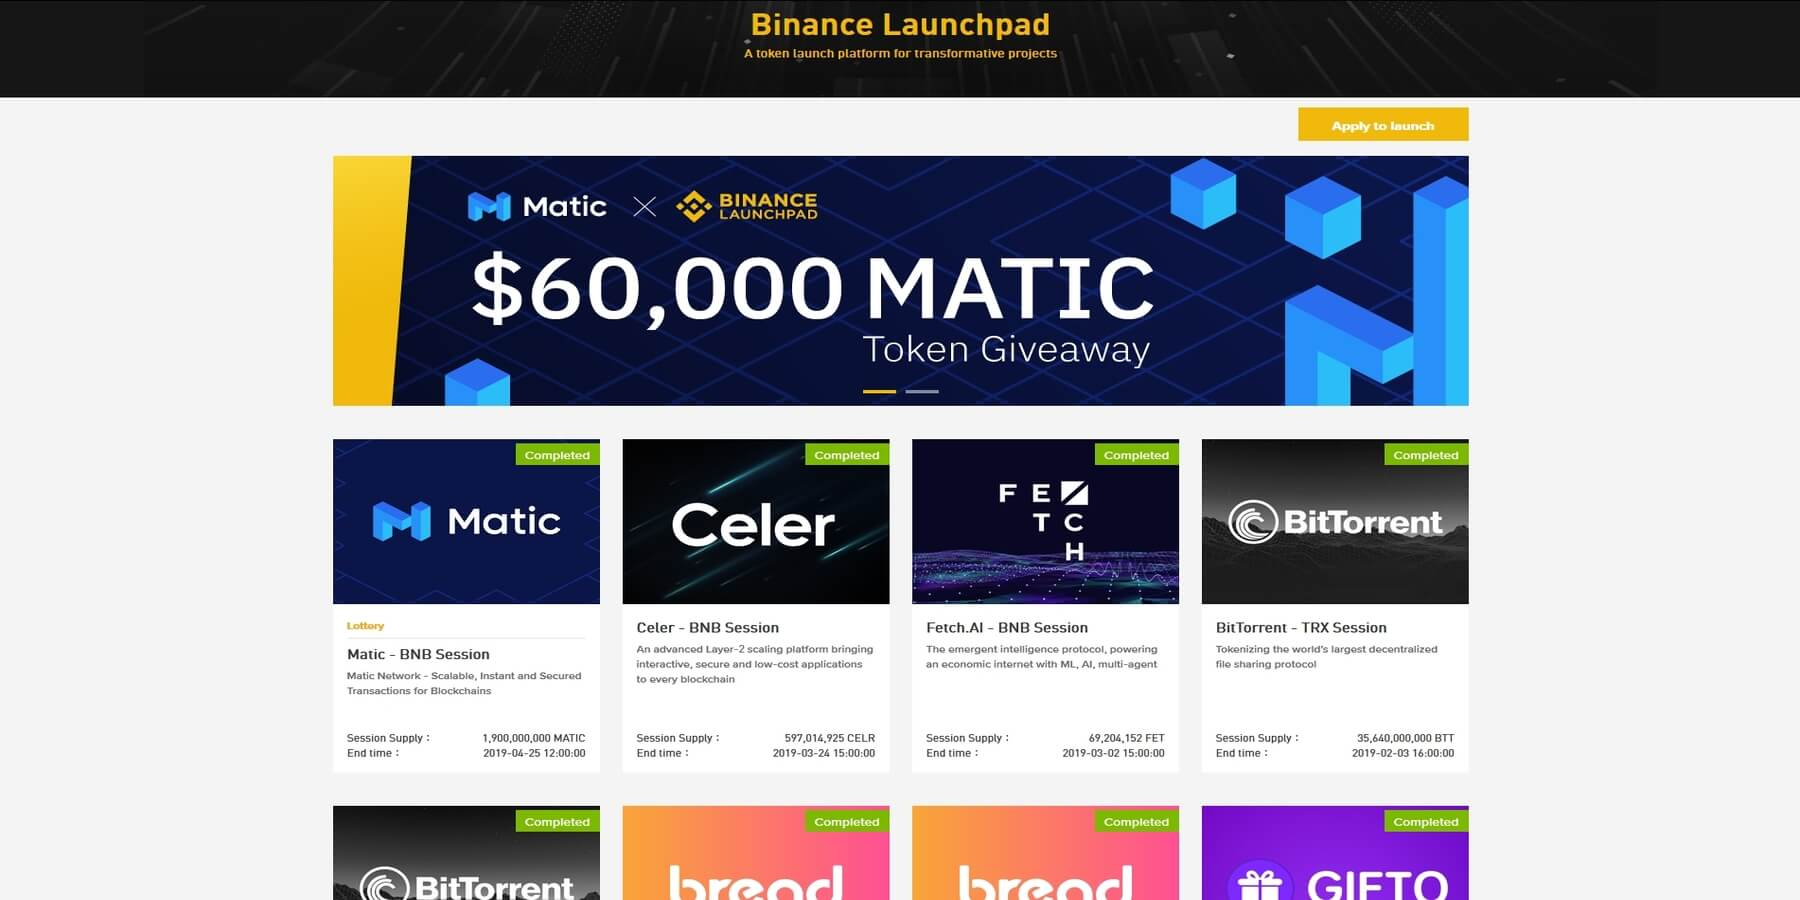 Le launchpad de Binance